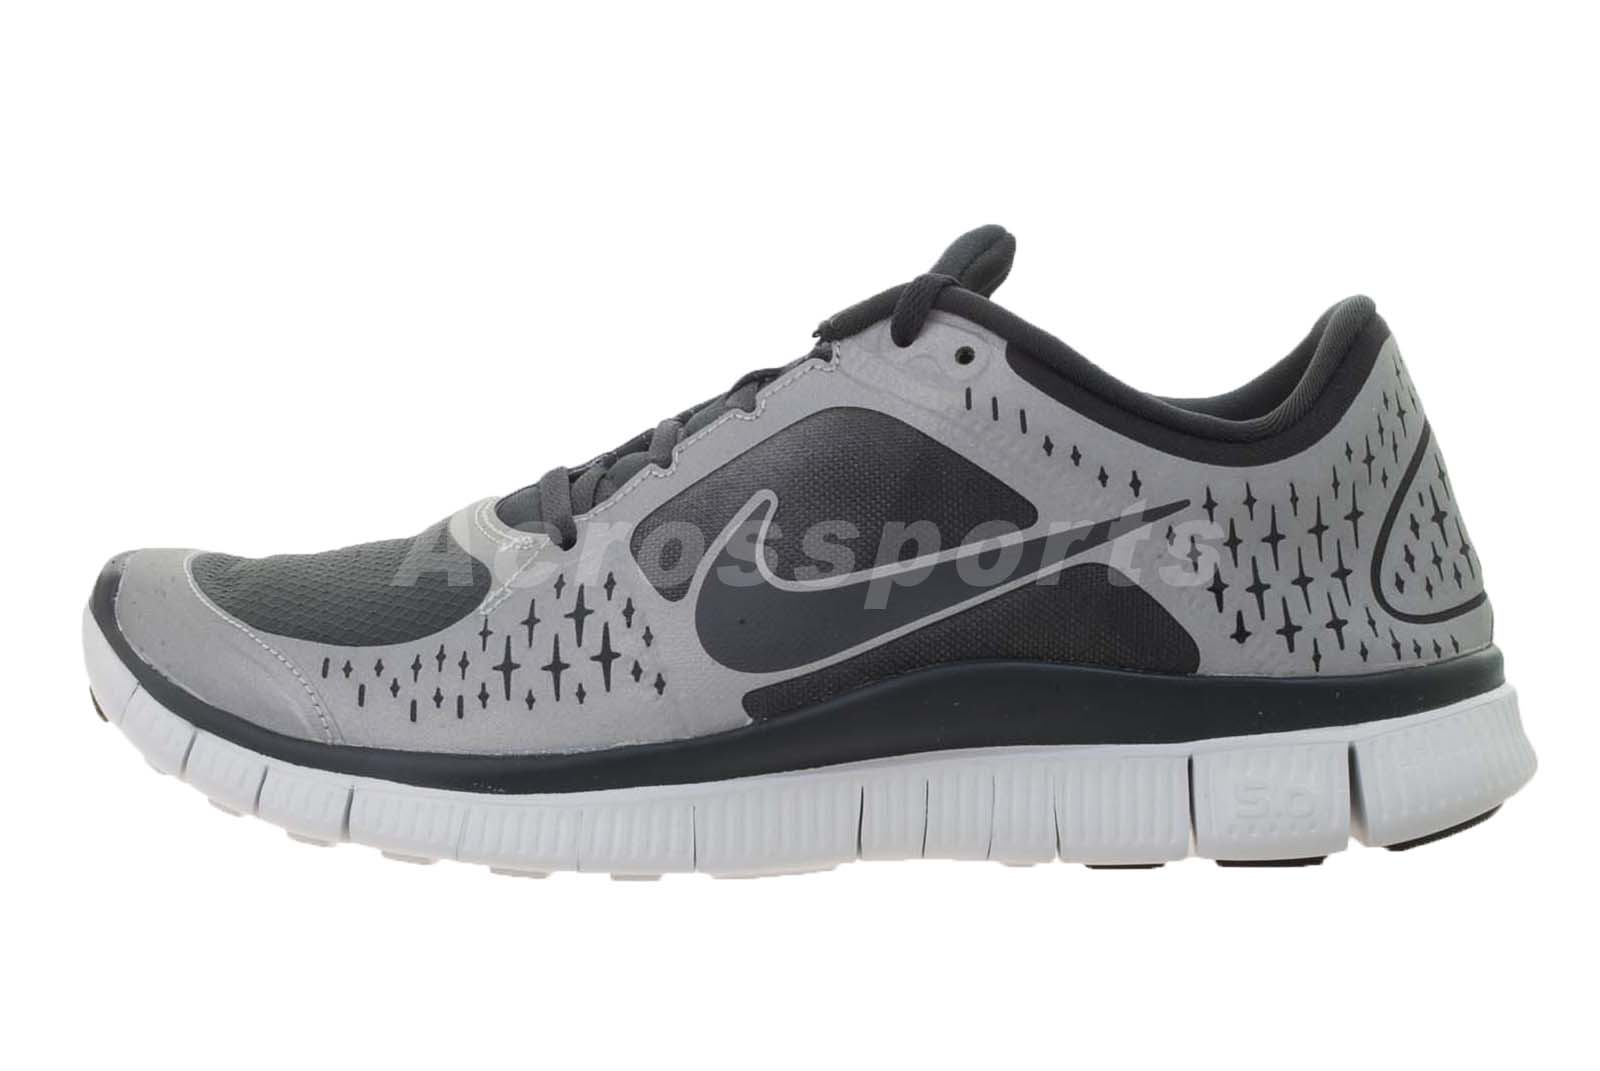 6bc8c7a1ceb1 ... promo code shox turbo 13 black. nike h20 repel women silver and pink  273c8 41613